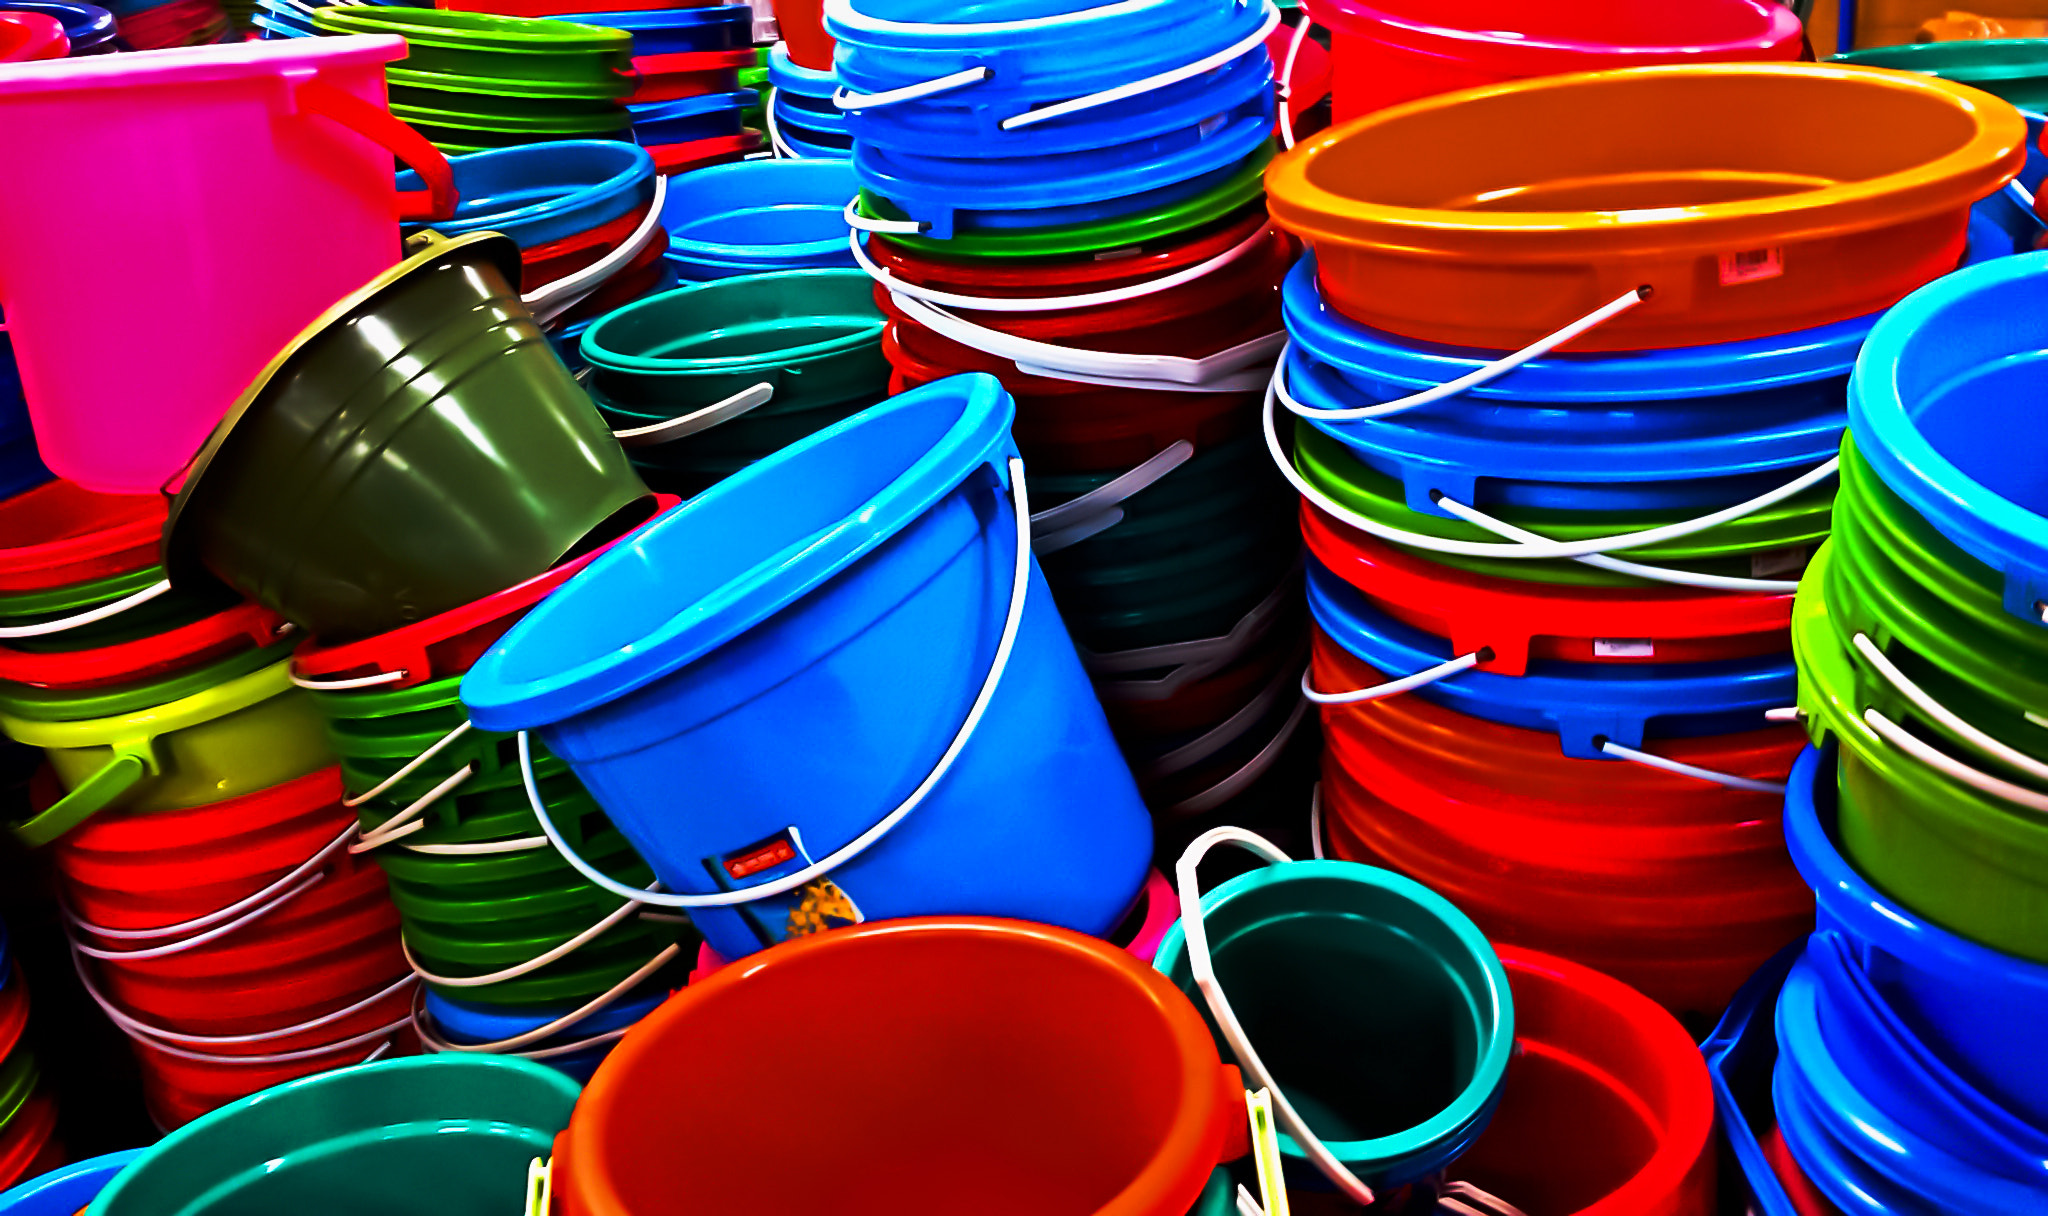 Photograph Pails in 'Progo' by Joe P. Marselo on 500px